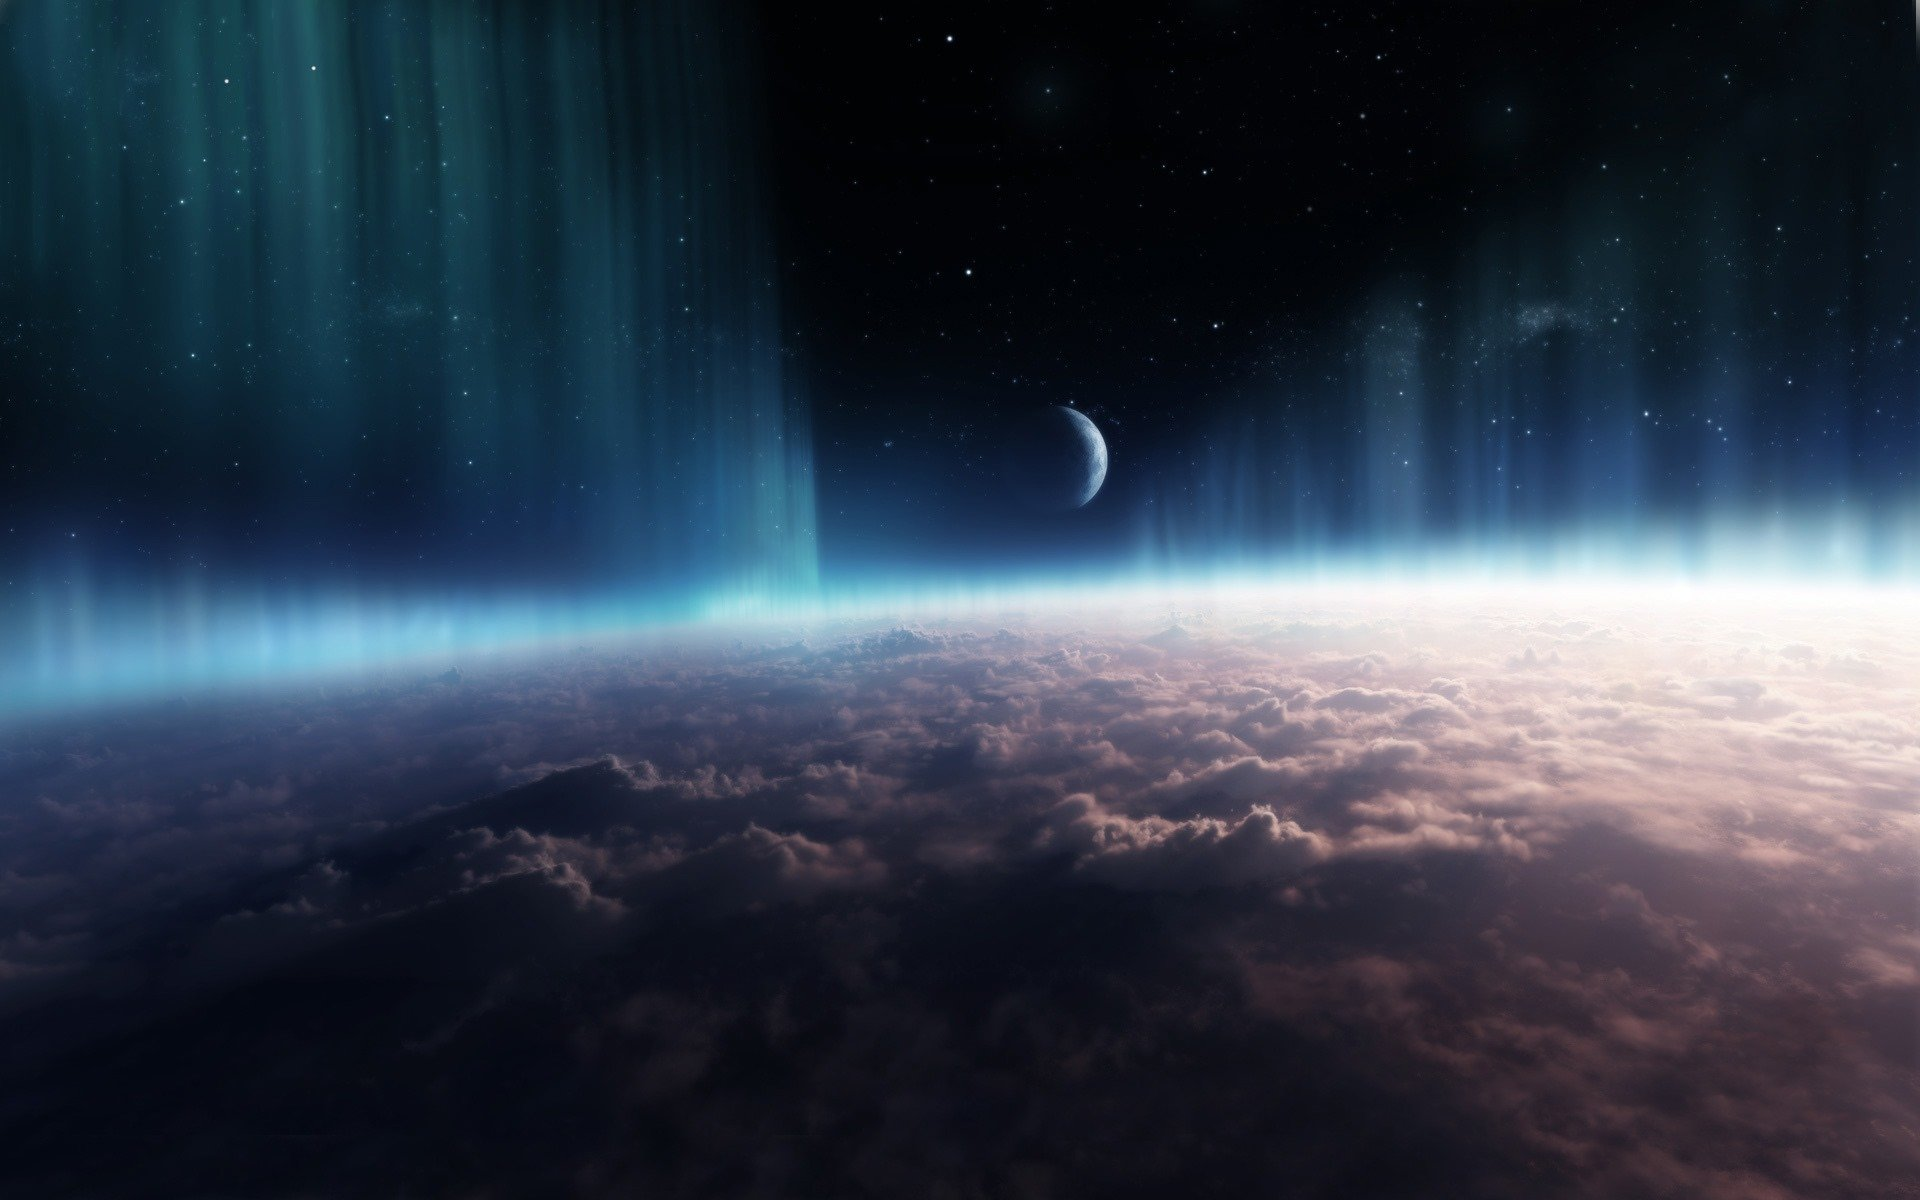 Space Abstract Space 1920x1200